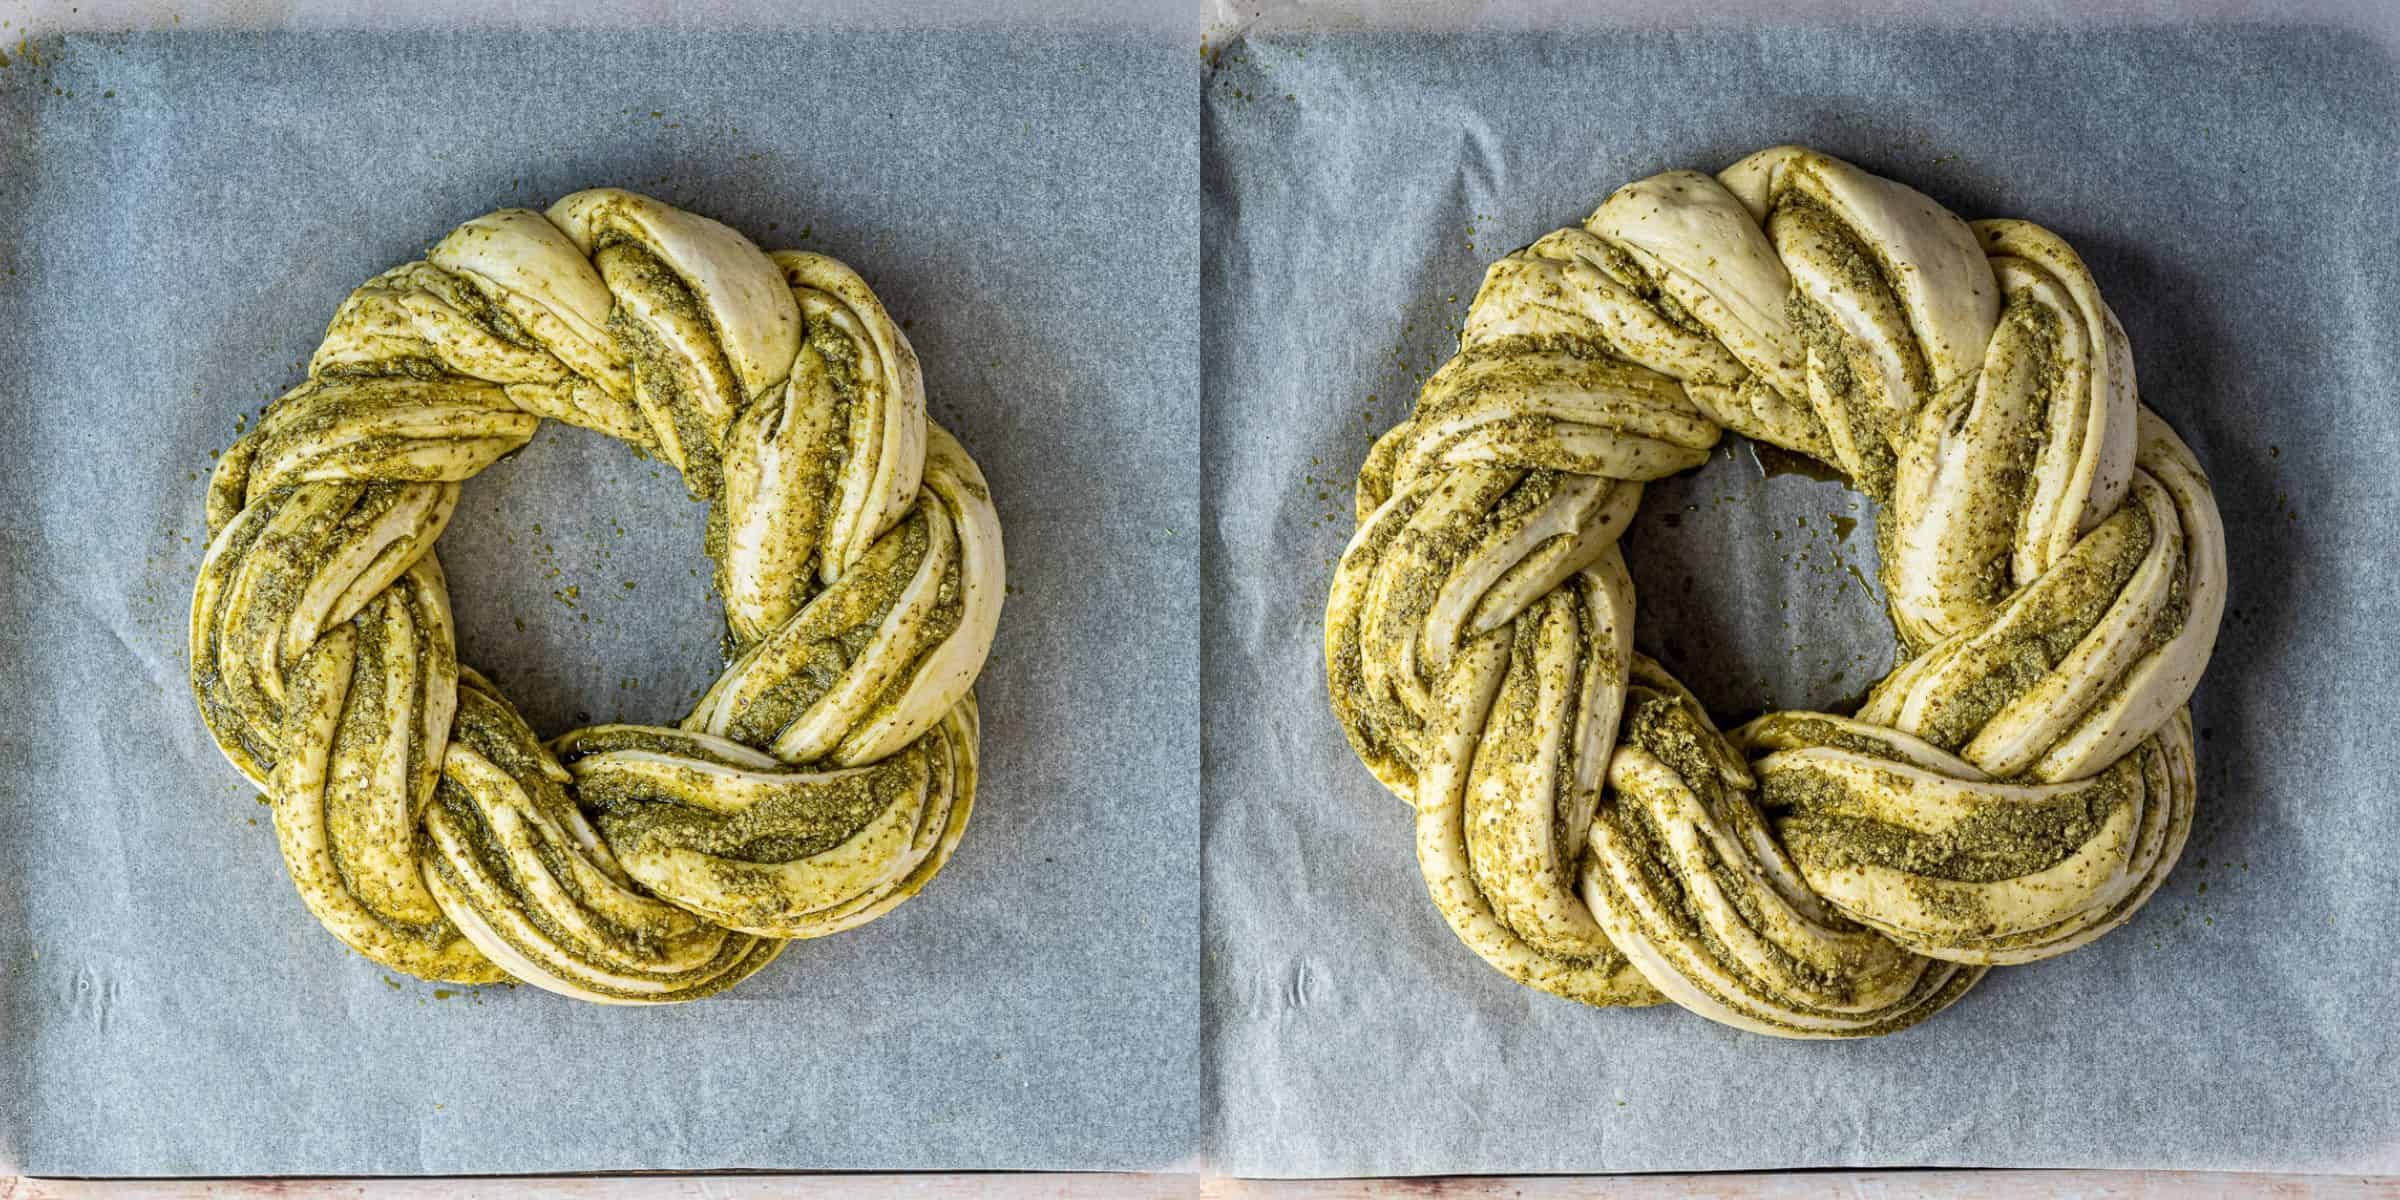 Step 5 - a two image collage of letting the bread wreath rise.